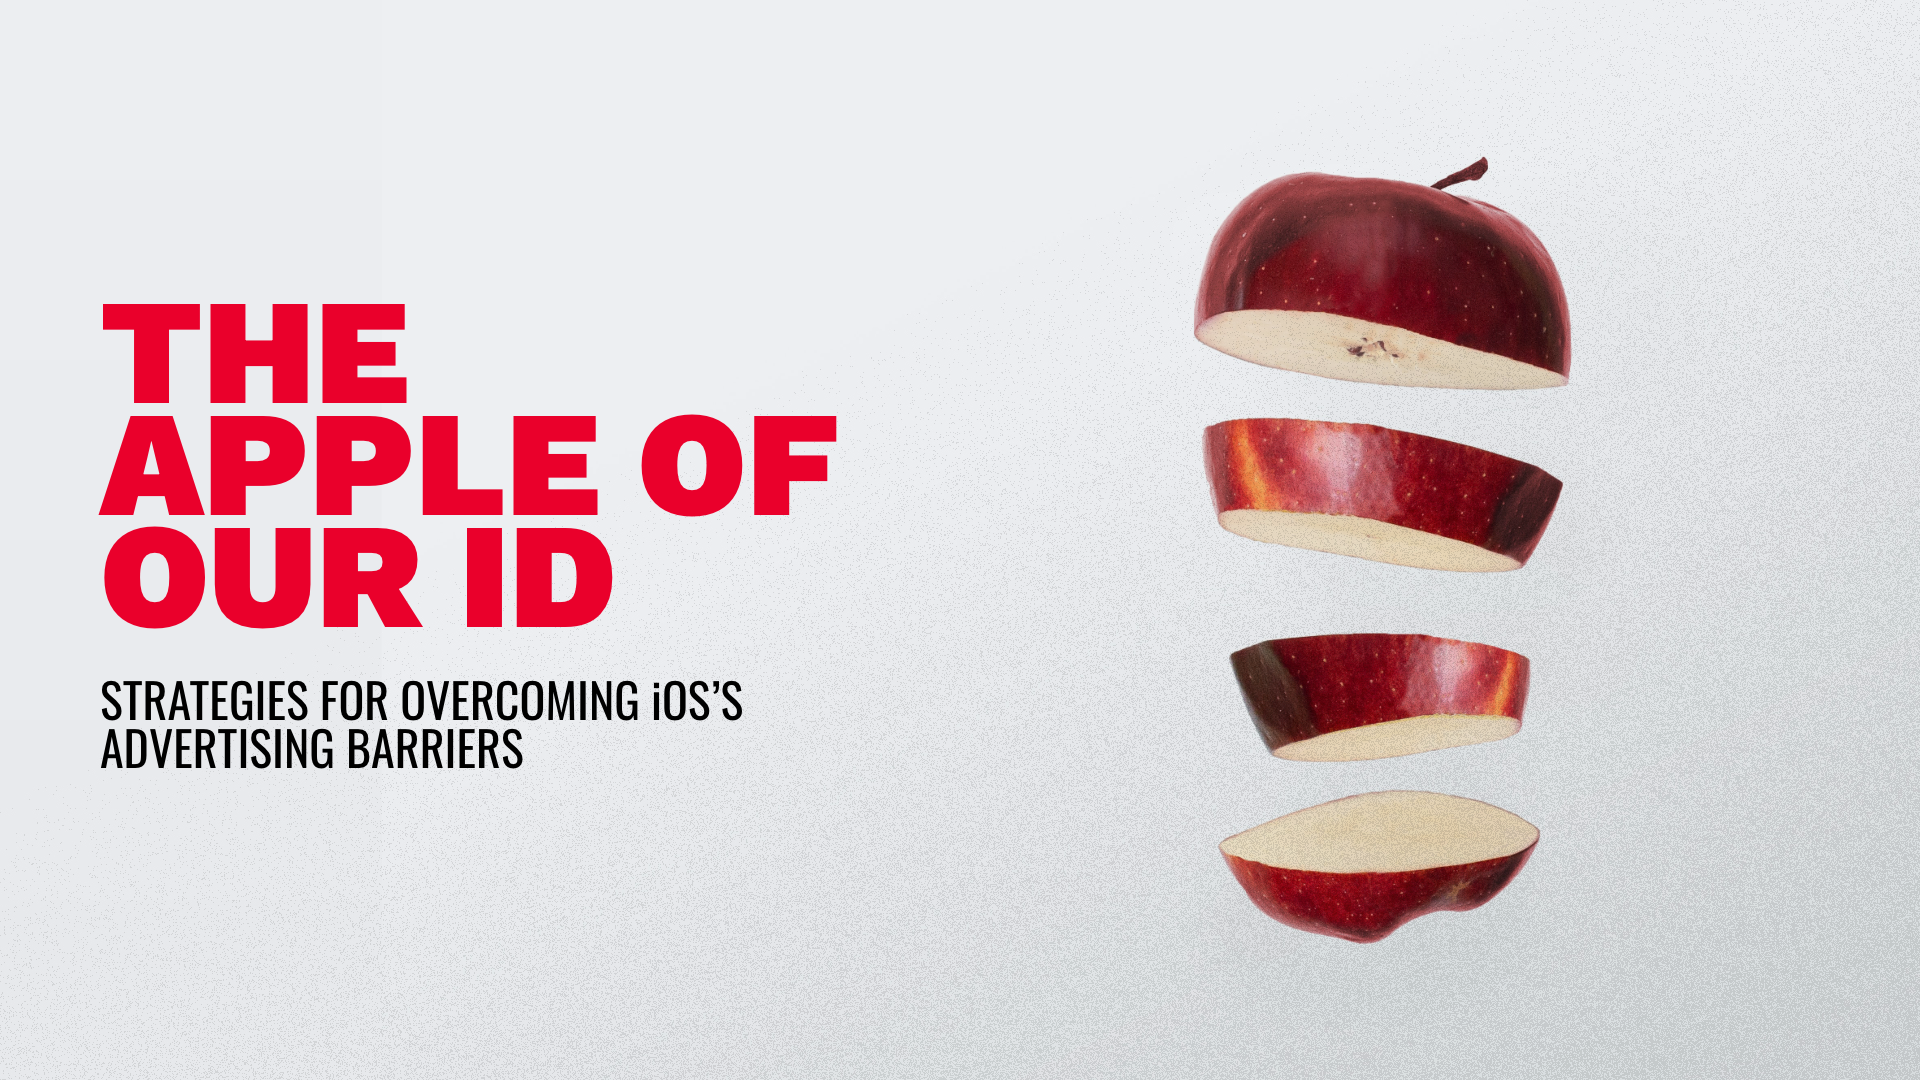 The Apple of our ID: Strategies for Overcoming iOS's Advertising Barriers